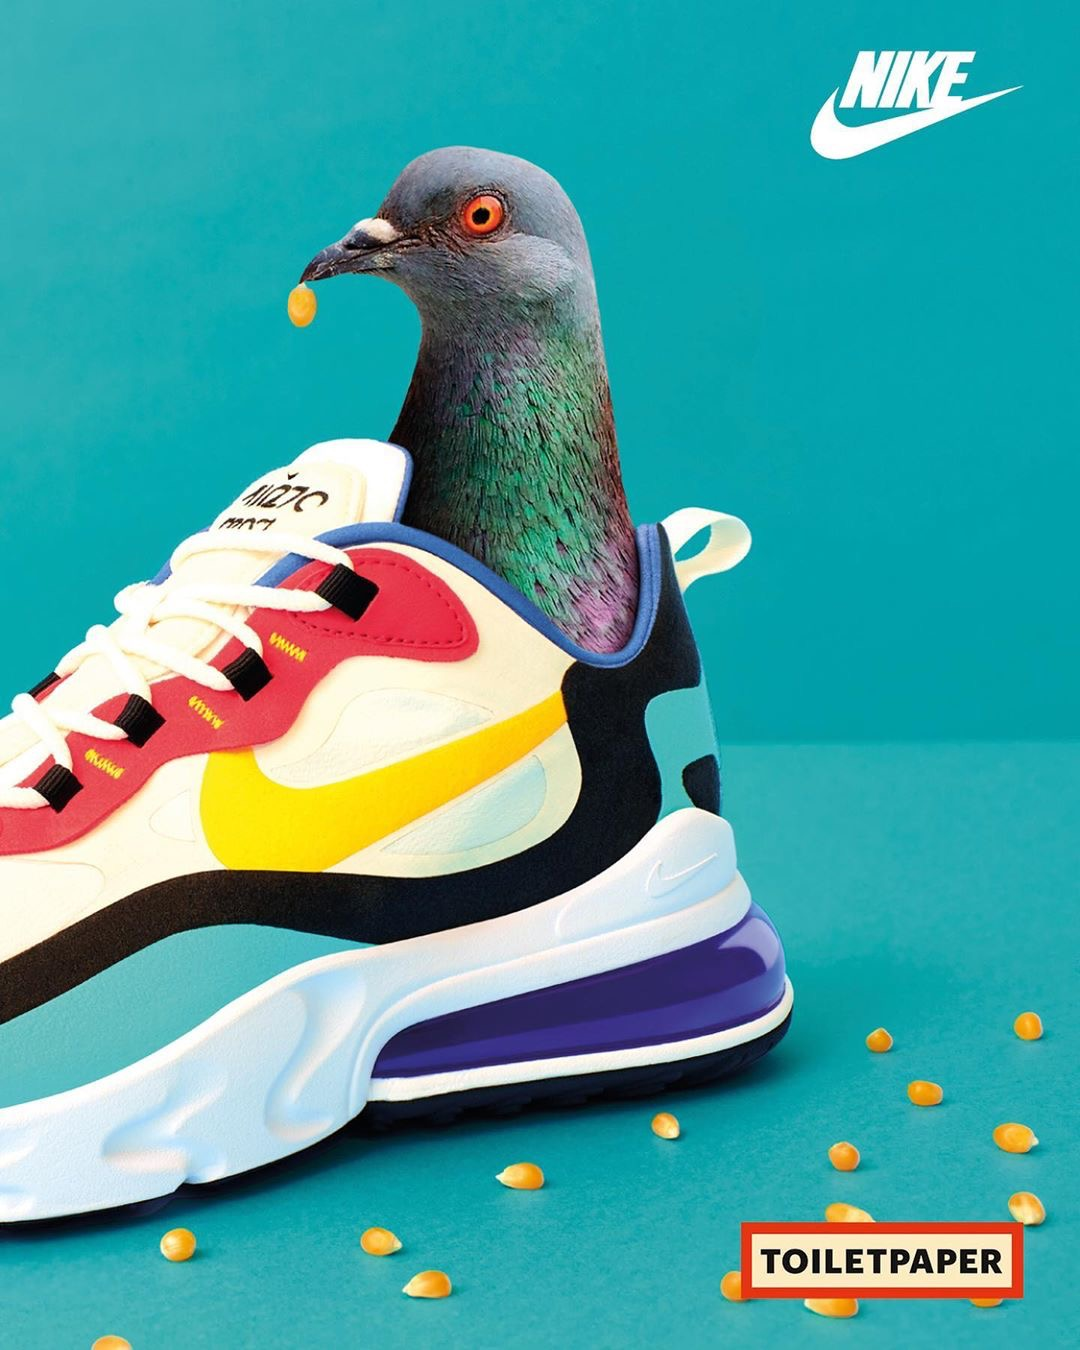 NIKE AIR MAX 270 REACT  BY TOILETPAPER